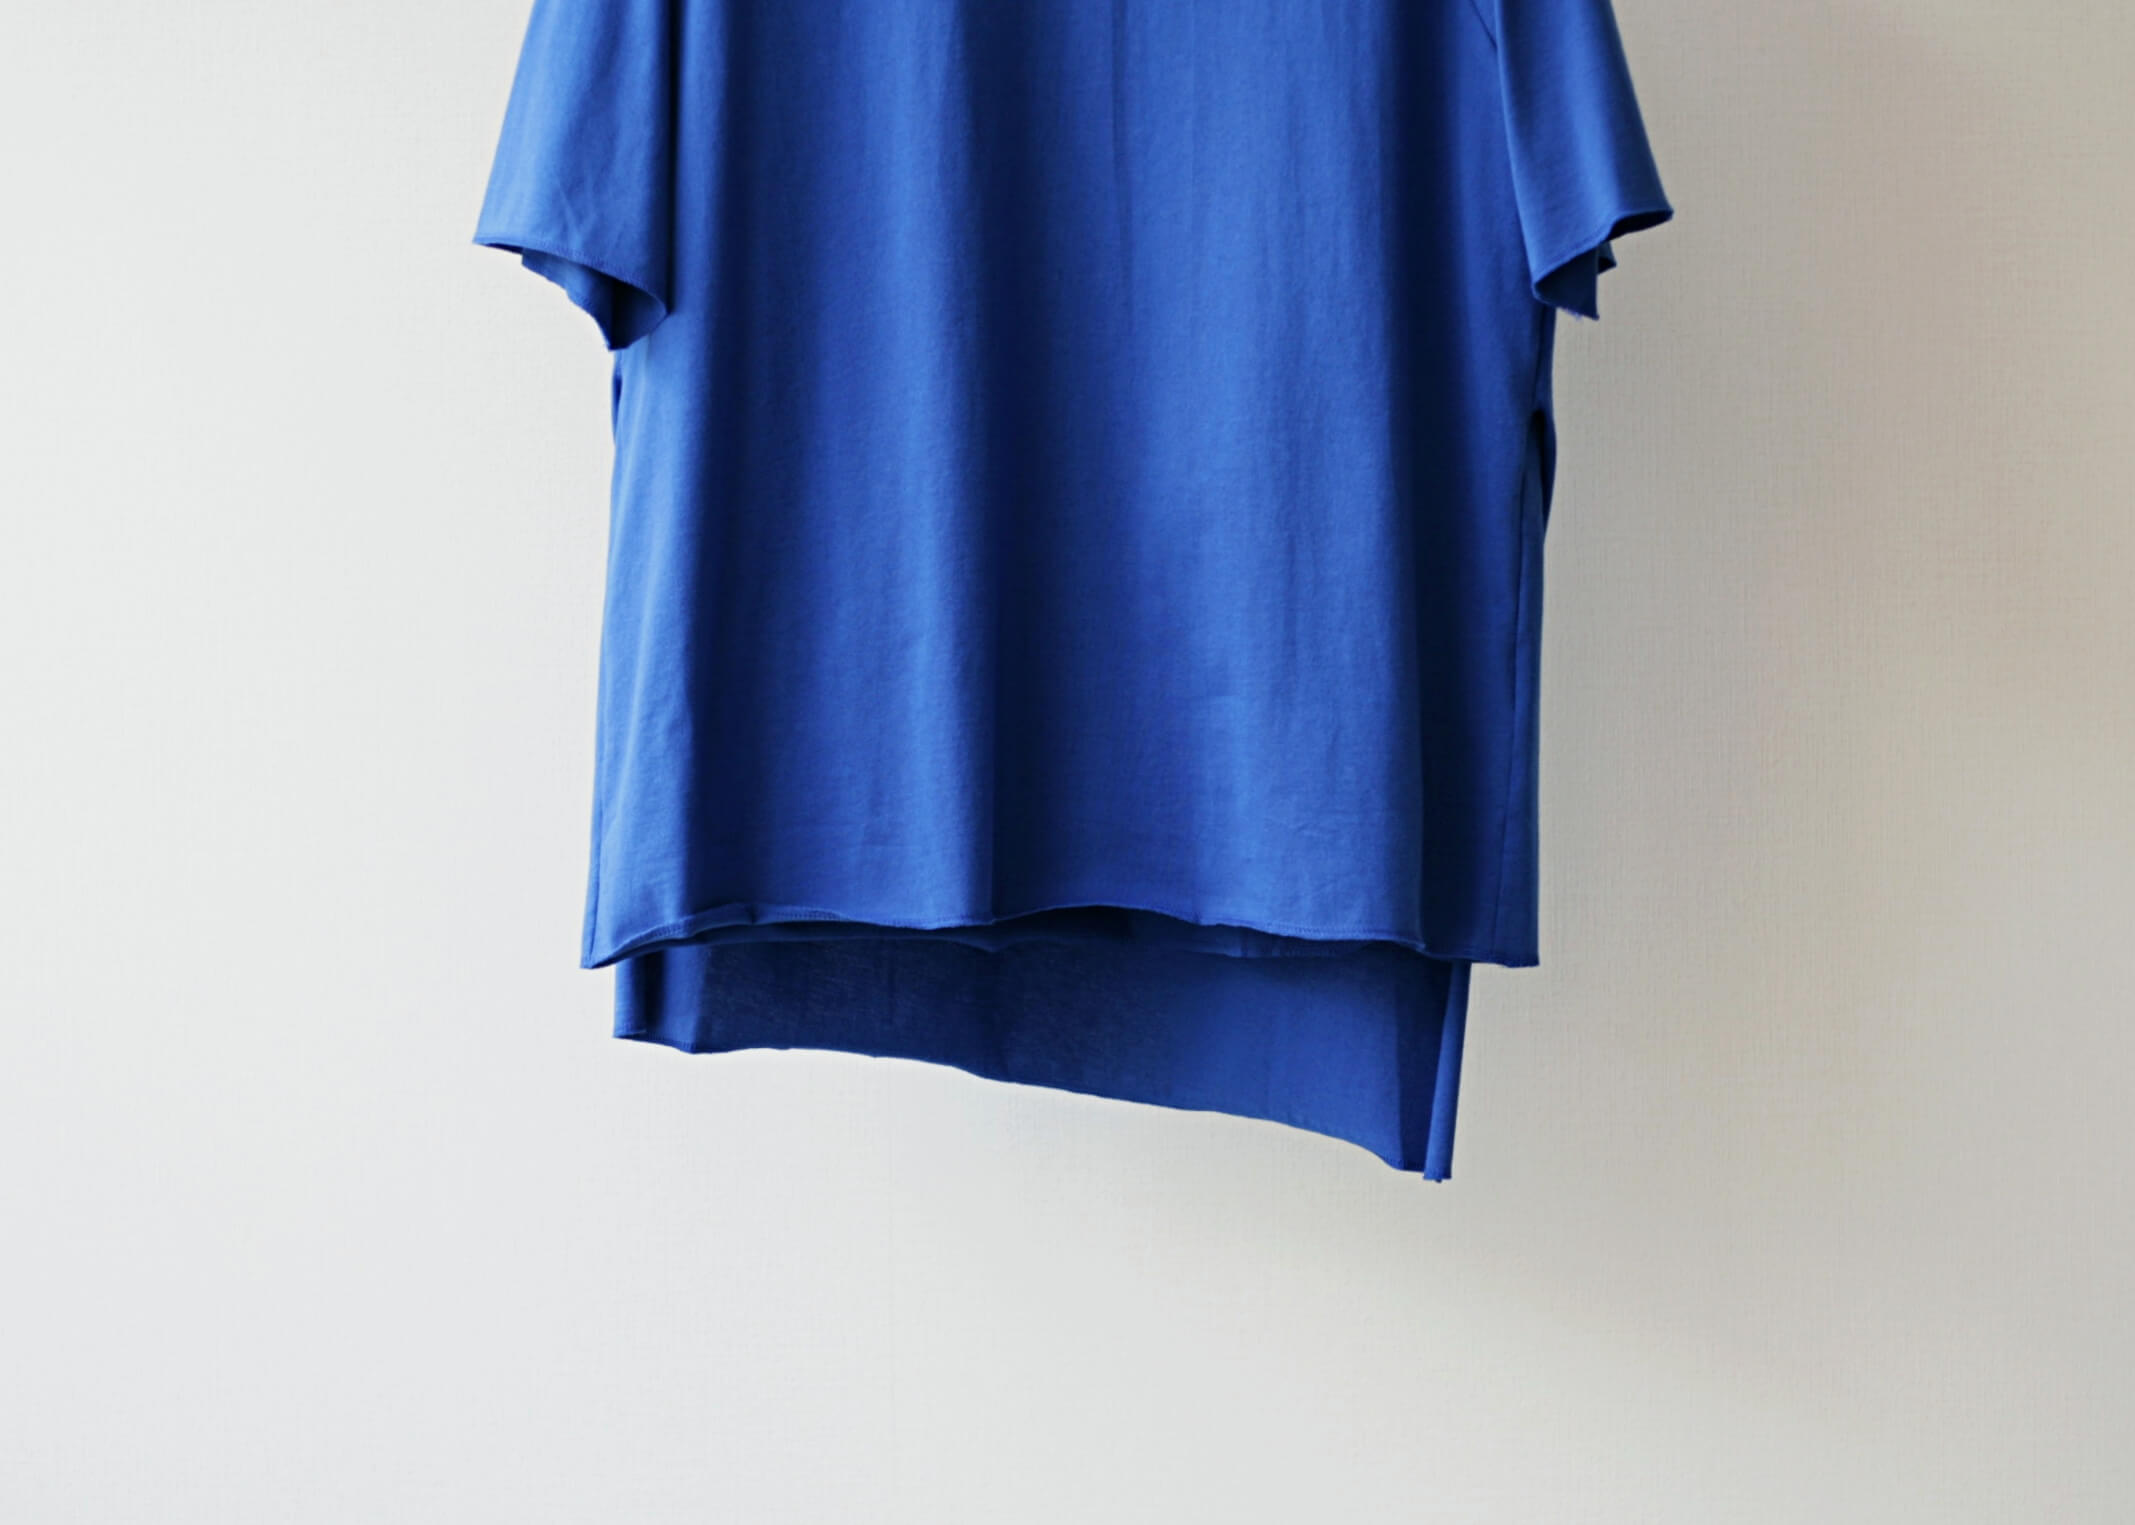 thee apron s/s blueの前面のアップ